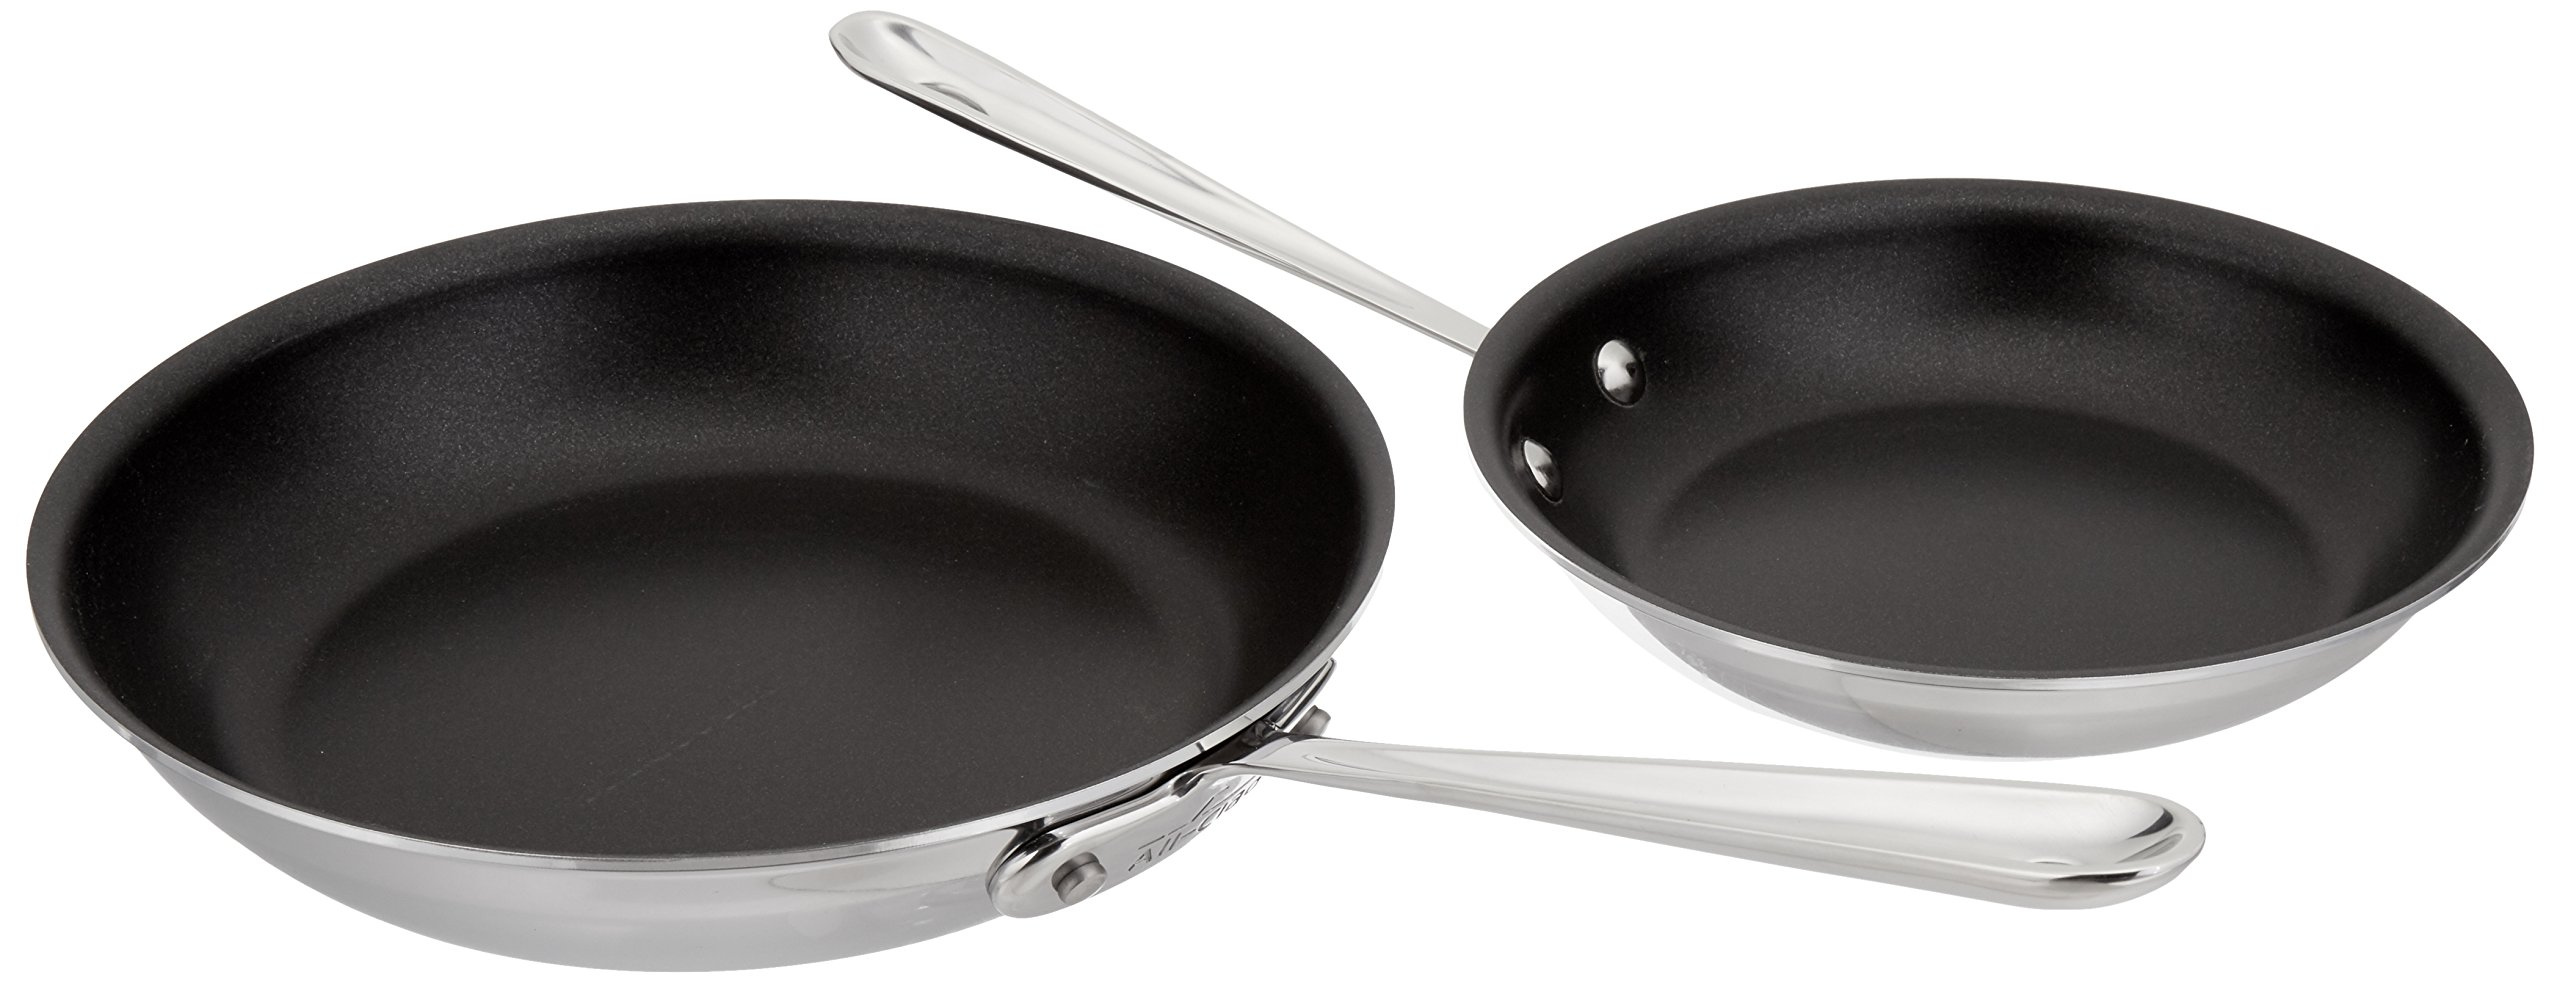 8-Inch Silver All-Clad BD55108NSR2 D5 Brushed 18//10 Stainless Steel 5-Ply Bonded Dishwasher Safe Nonstick Fry Pan Saute Pan Cookware